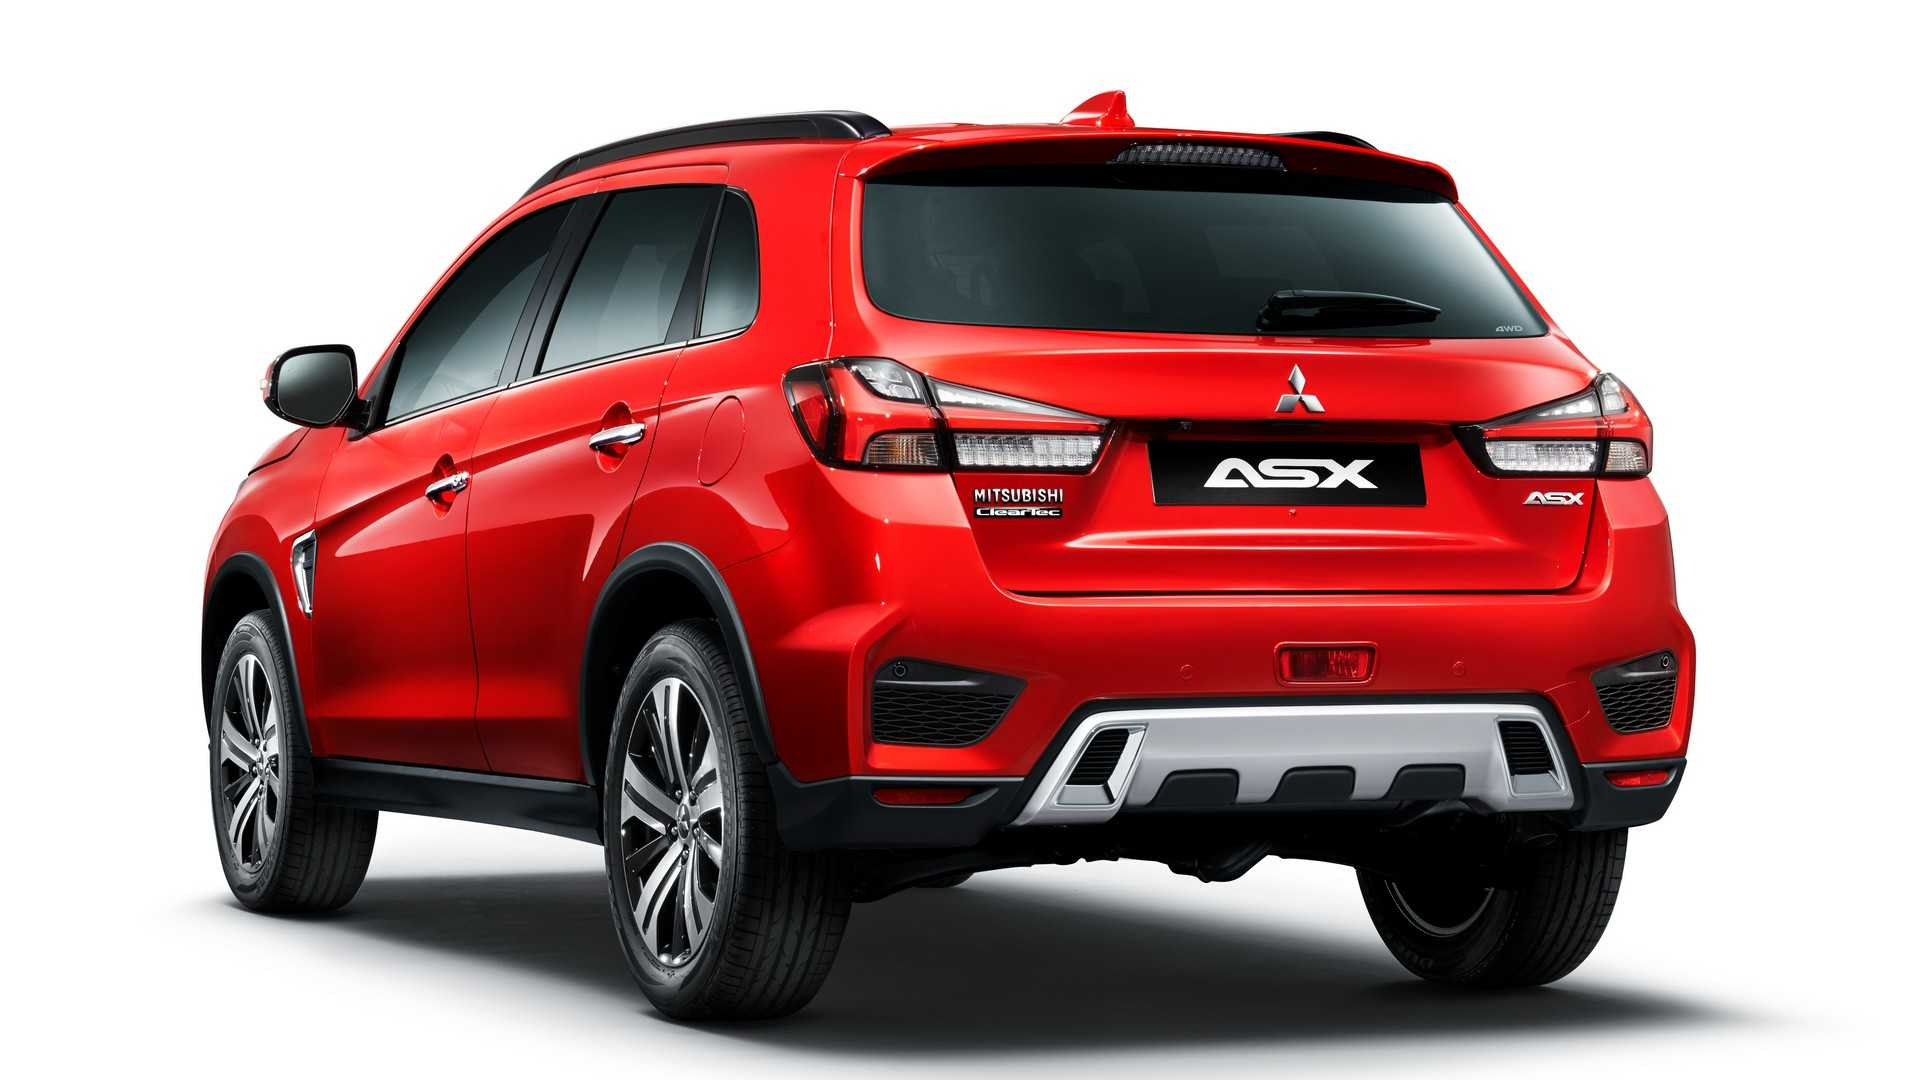 37 New Mitsubishi Asx 2020 Brasil Review